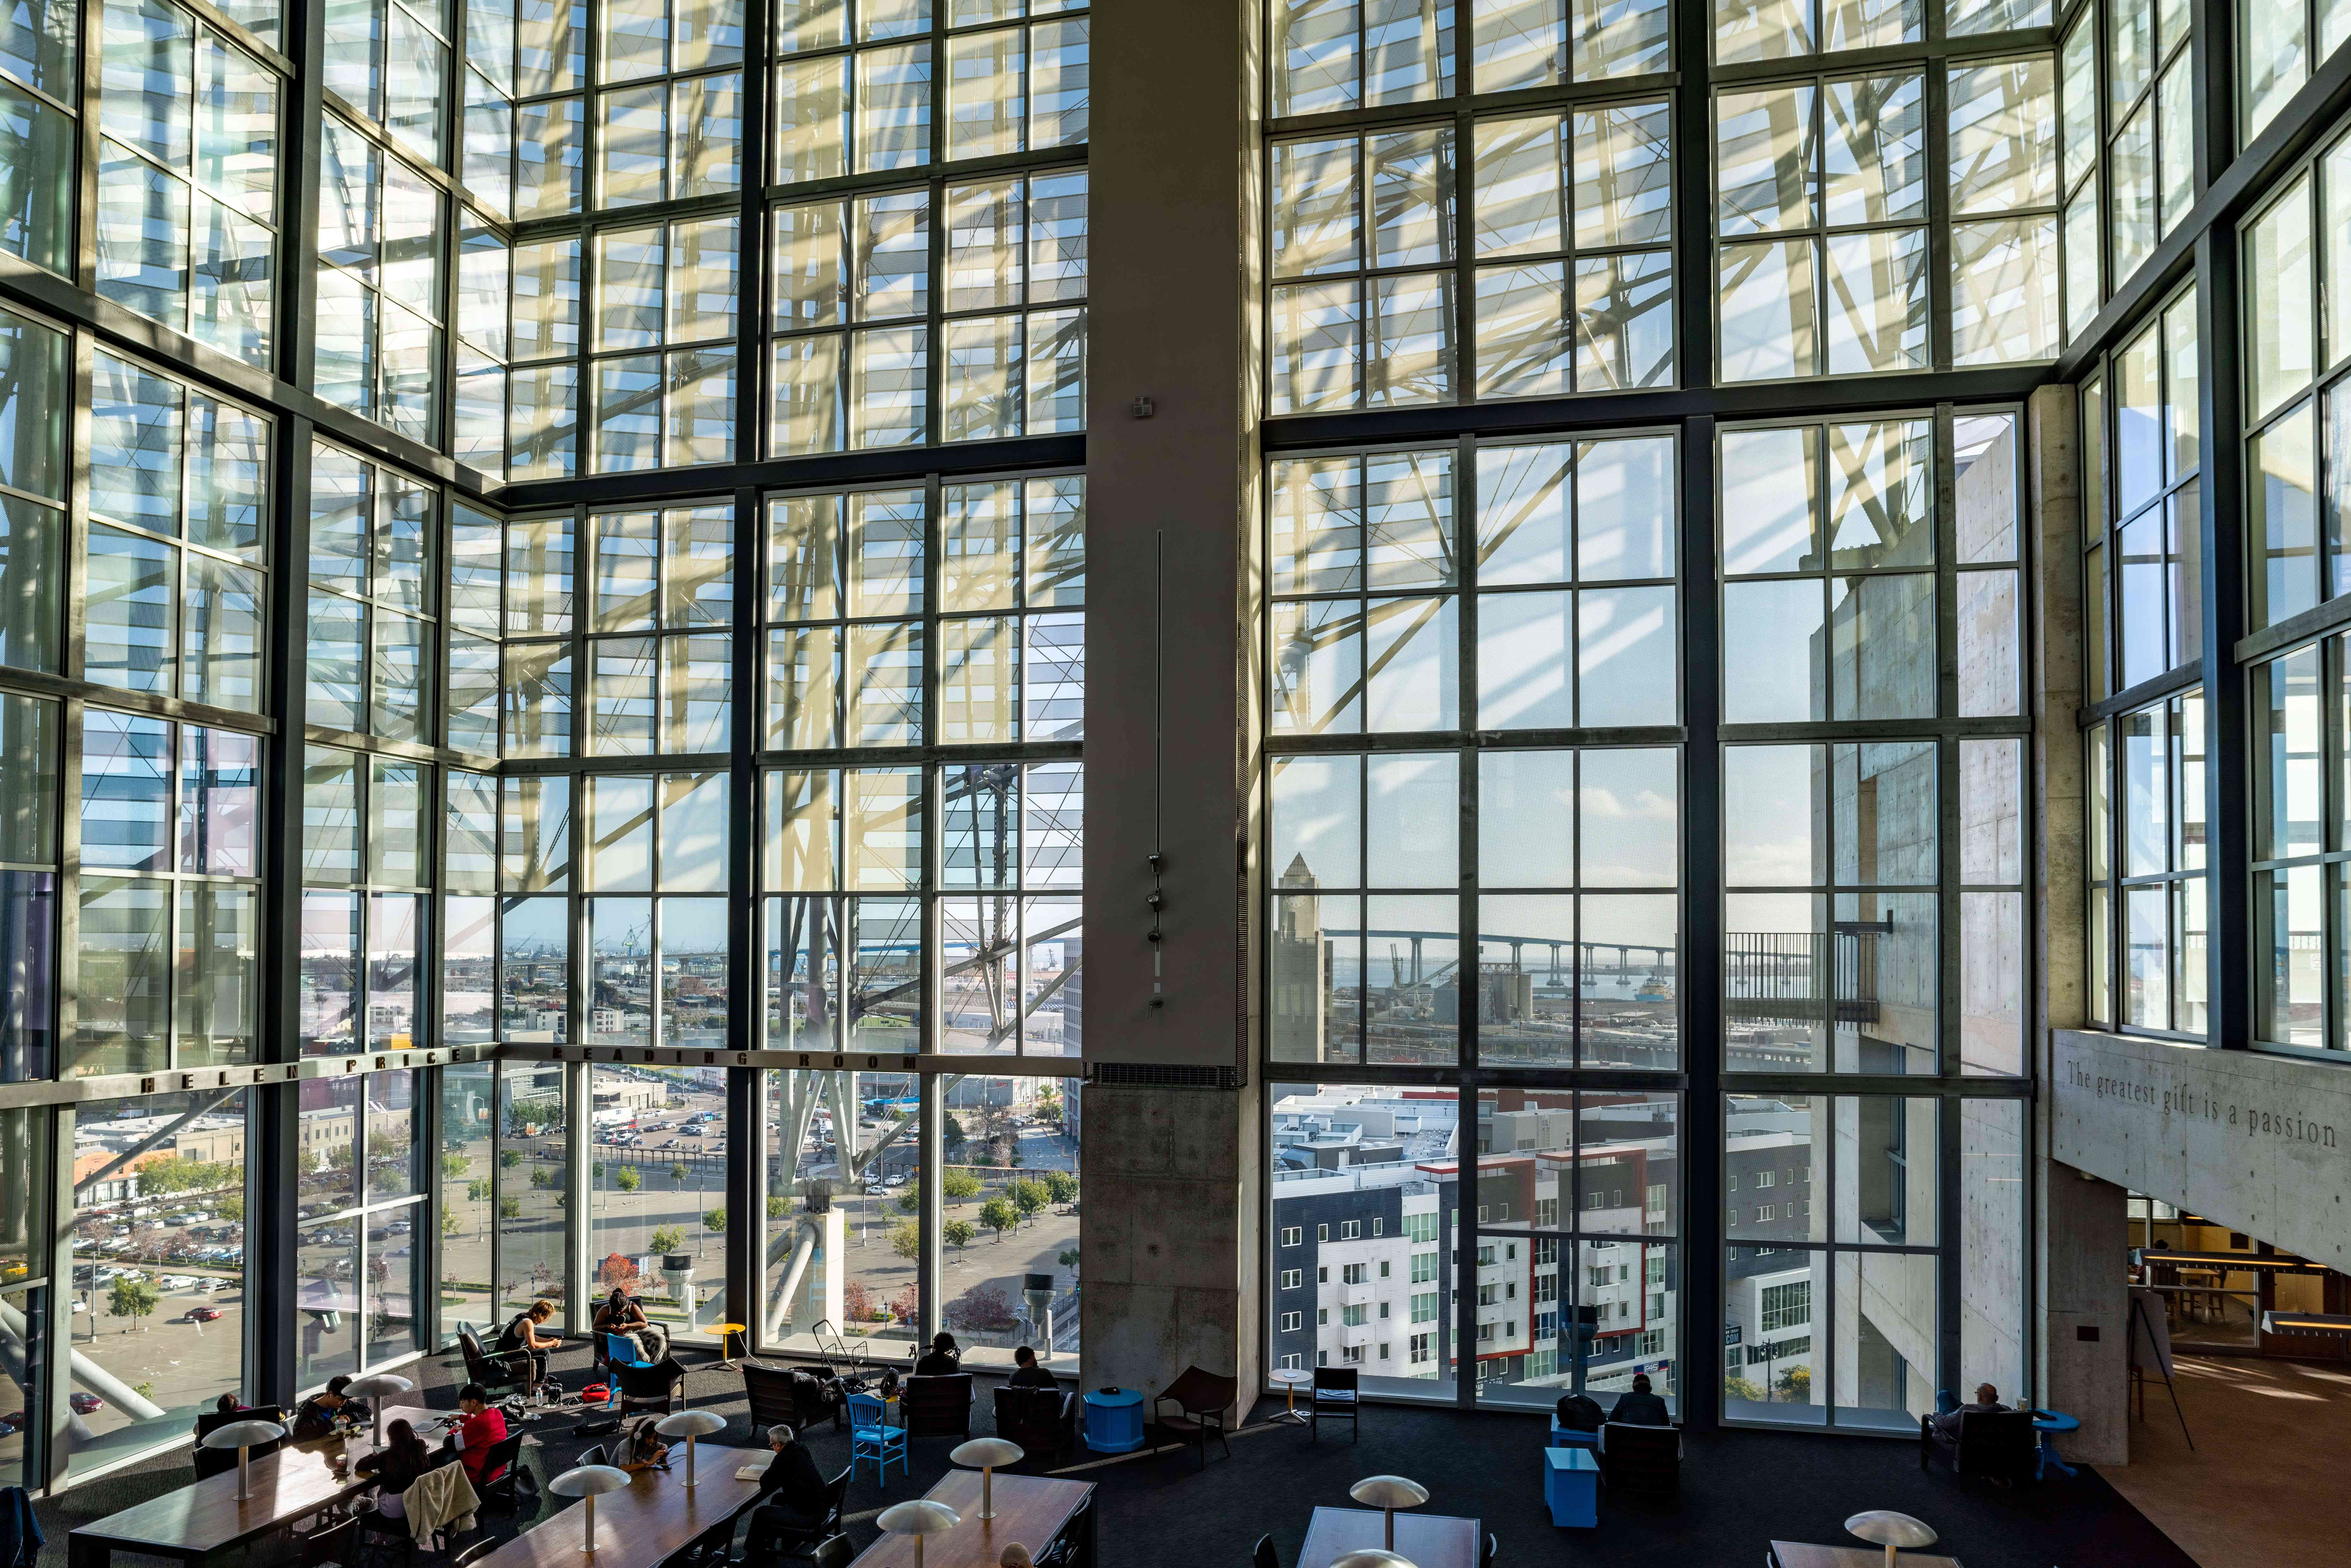 Glass walls of San Diego's Central Library